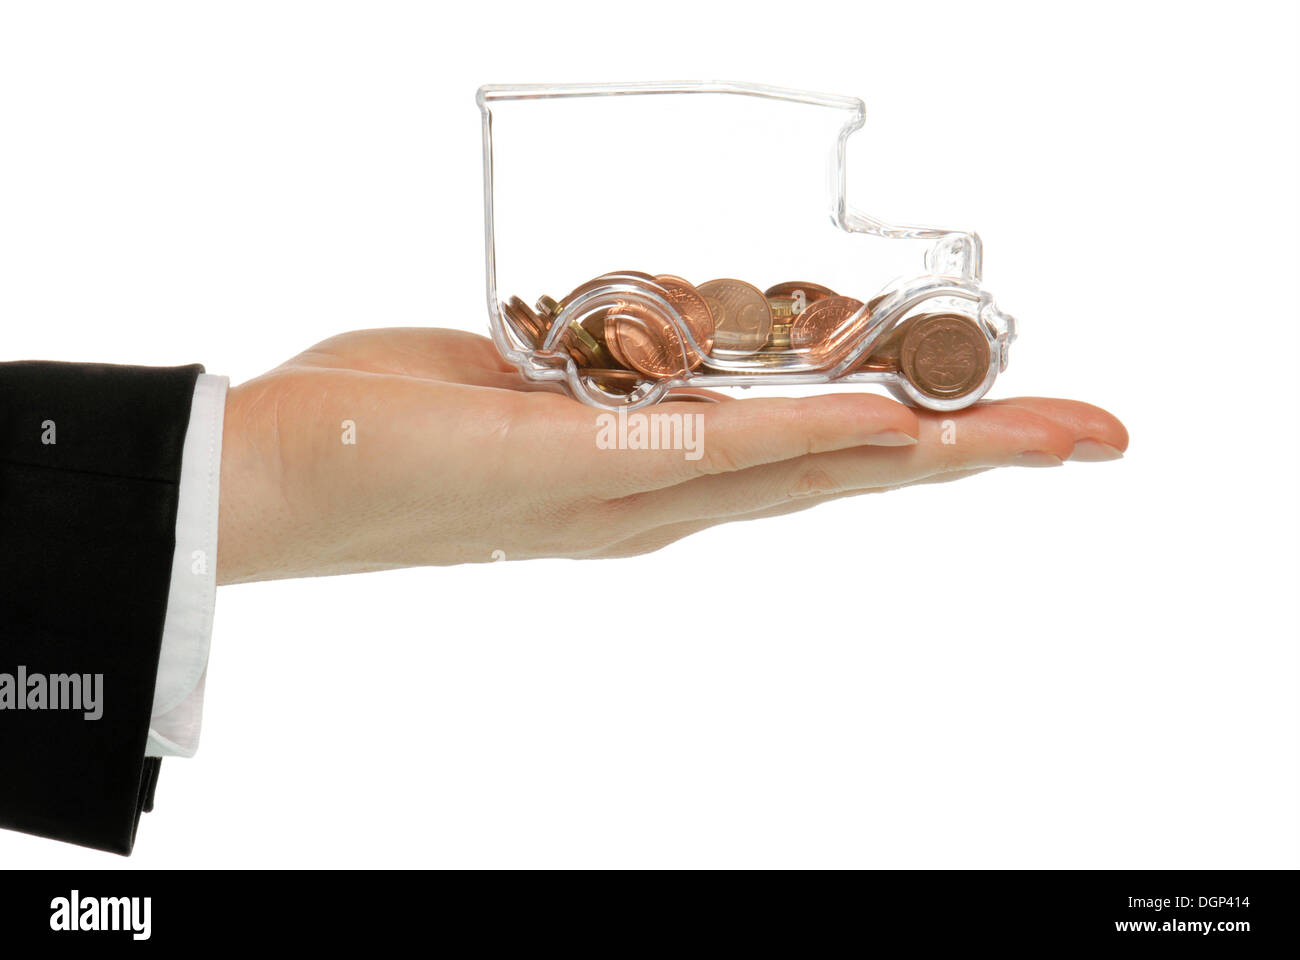 Business man holding a transparent model truck full of euro coints, symbolic image for transparency in transport costs - Stock Image